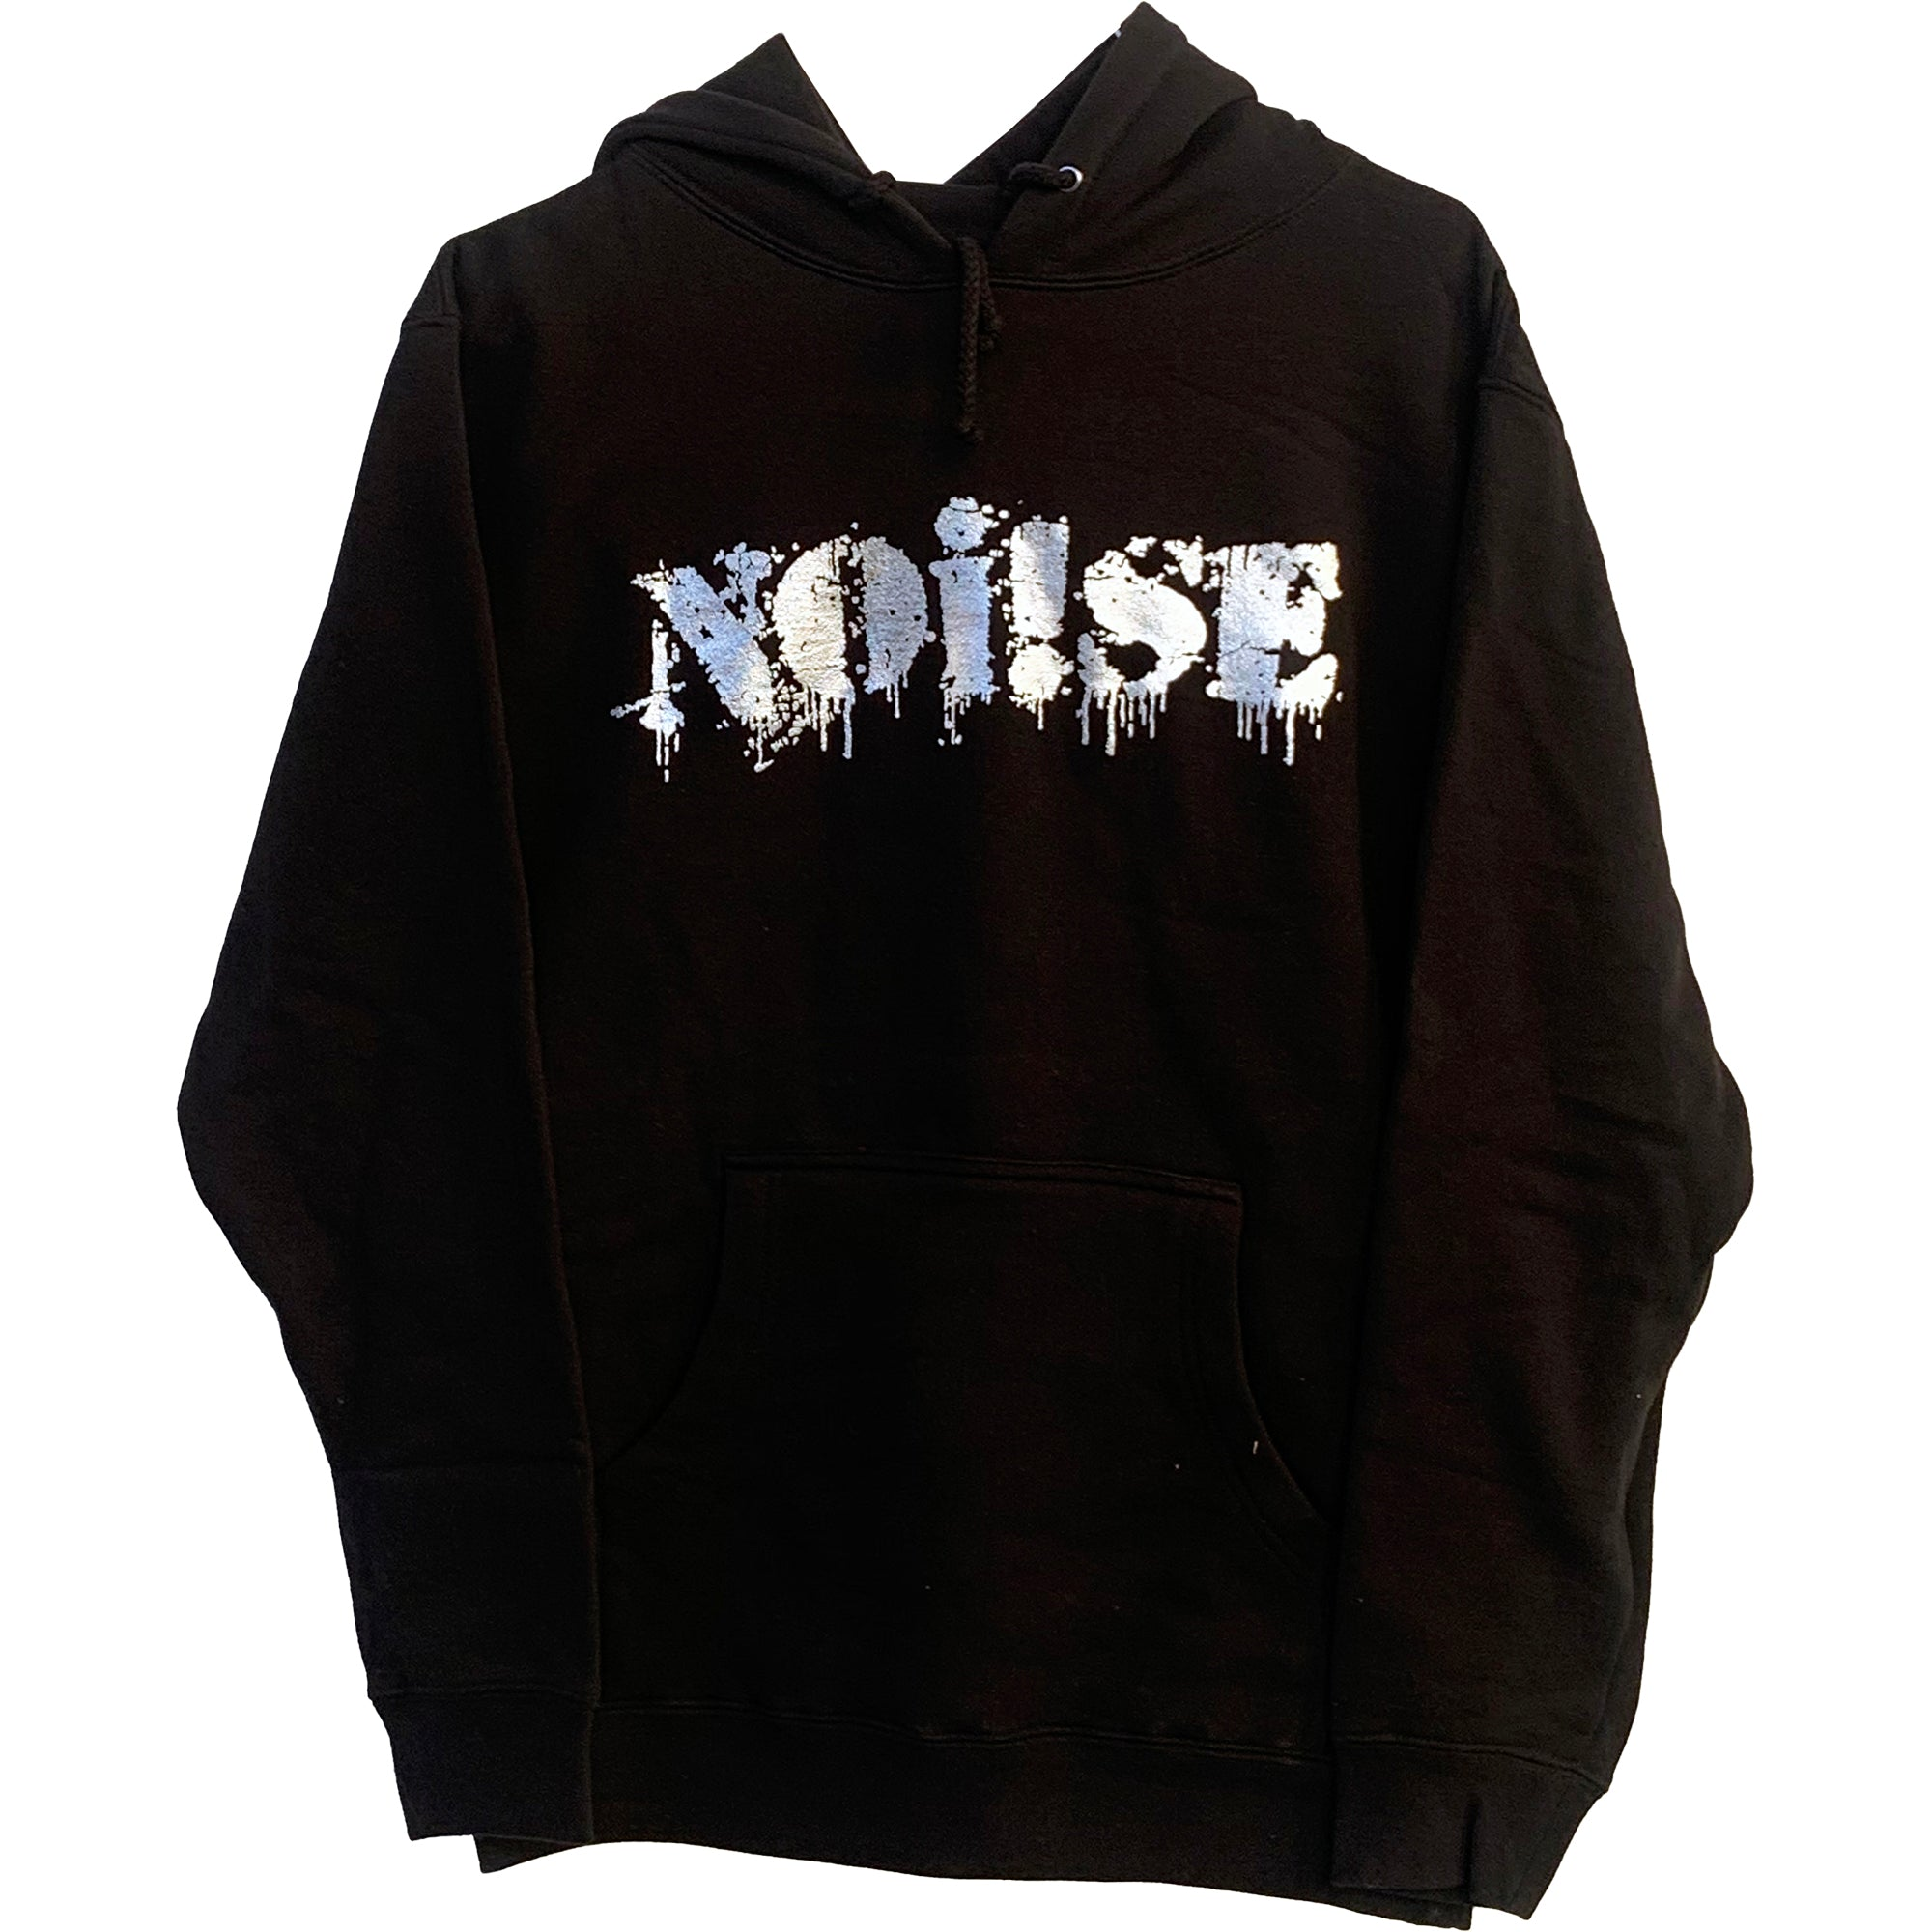 NOi!SE - Logo - Silver on Black - Hooded Sweatshirt